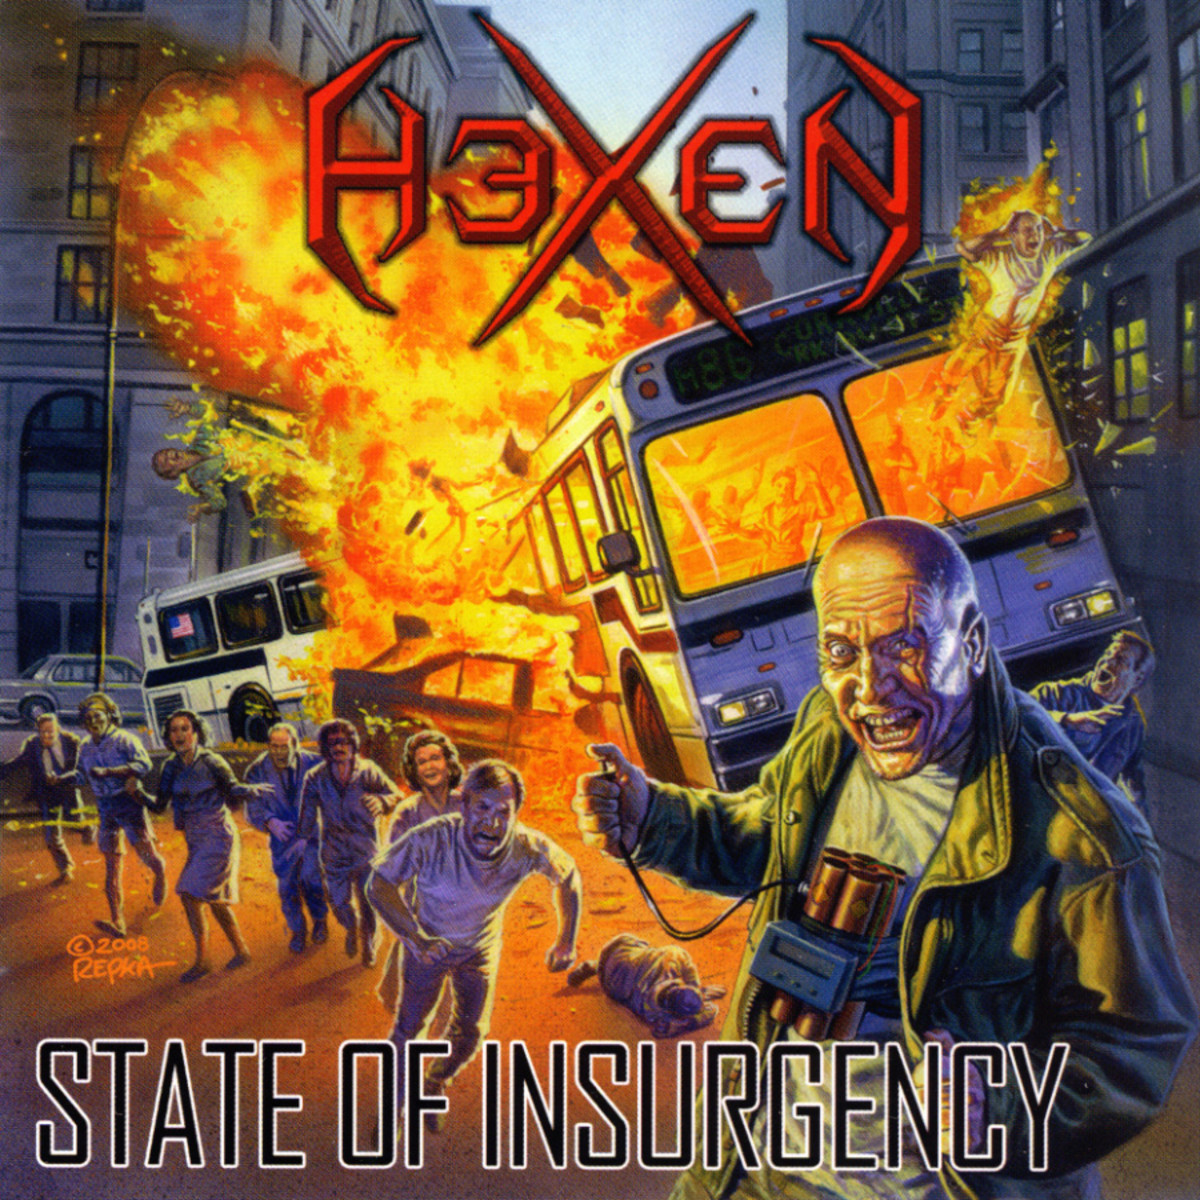 Although the album cover for State of Insurgency shows a very chaotic scene, the album is anything but that, providing listeners with some good progressive thrash metal.